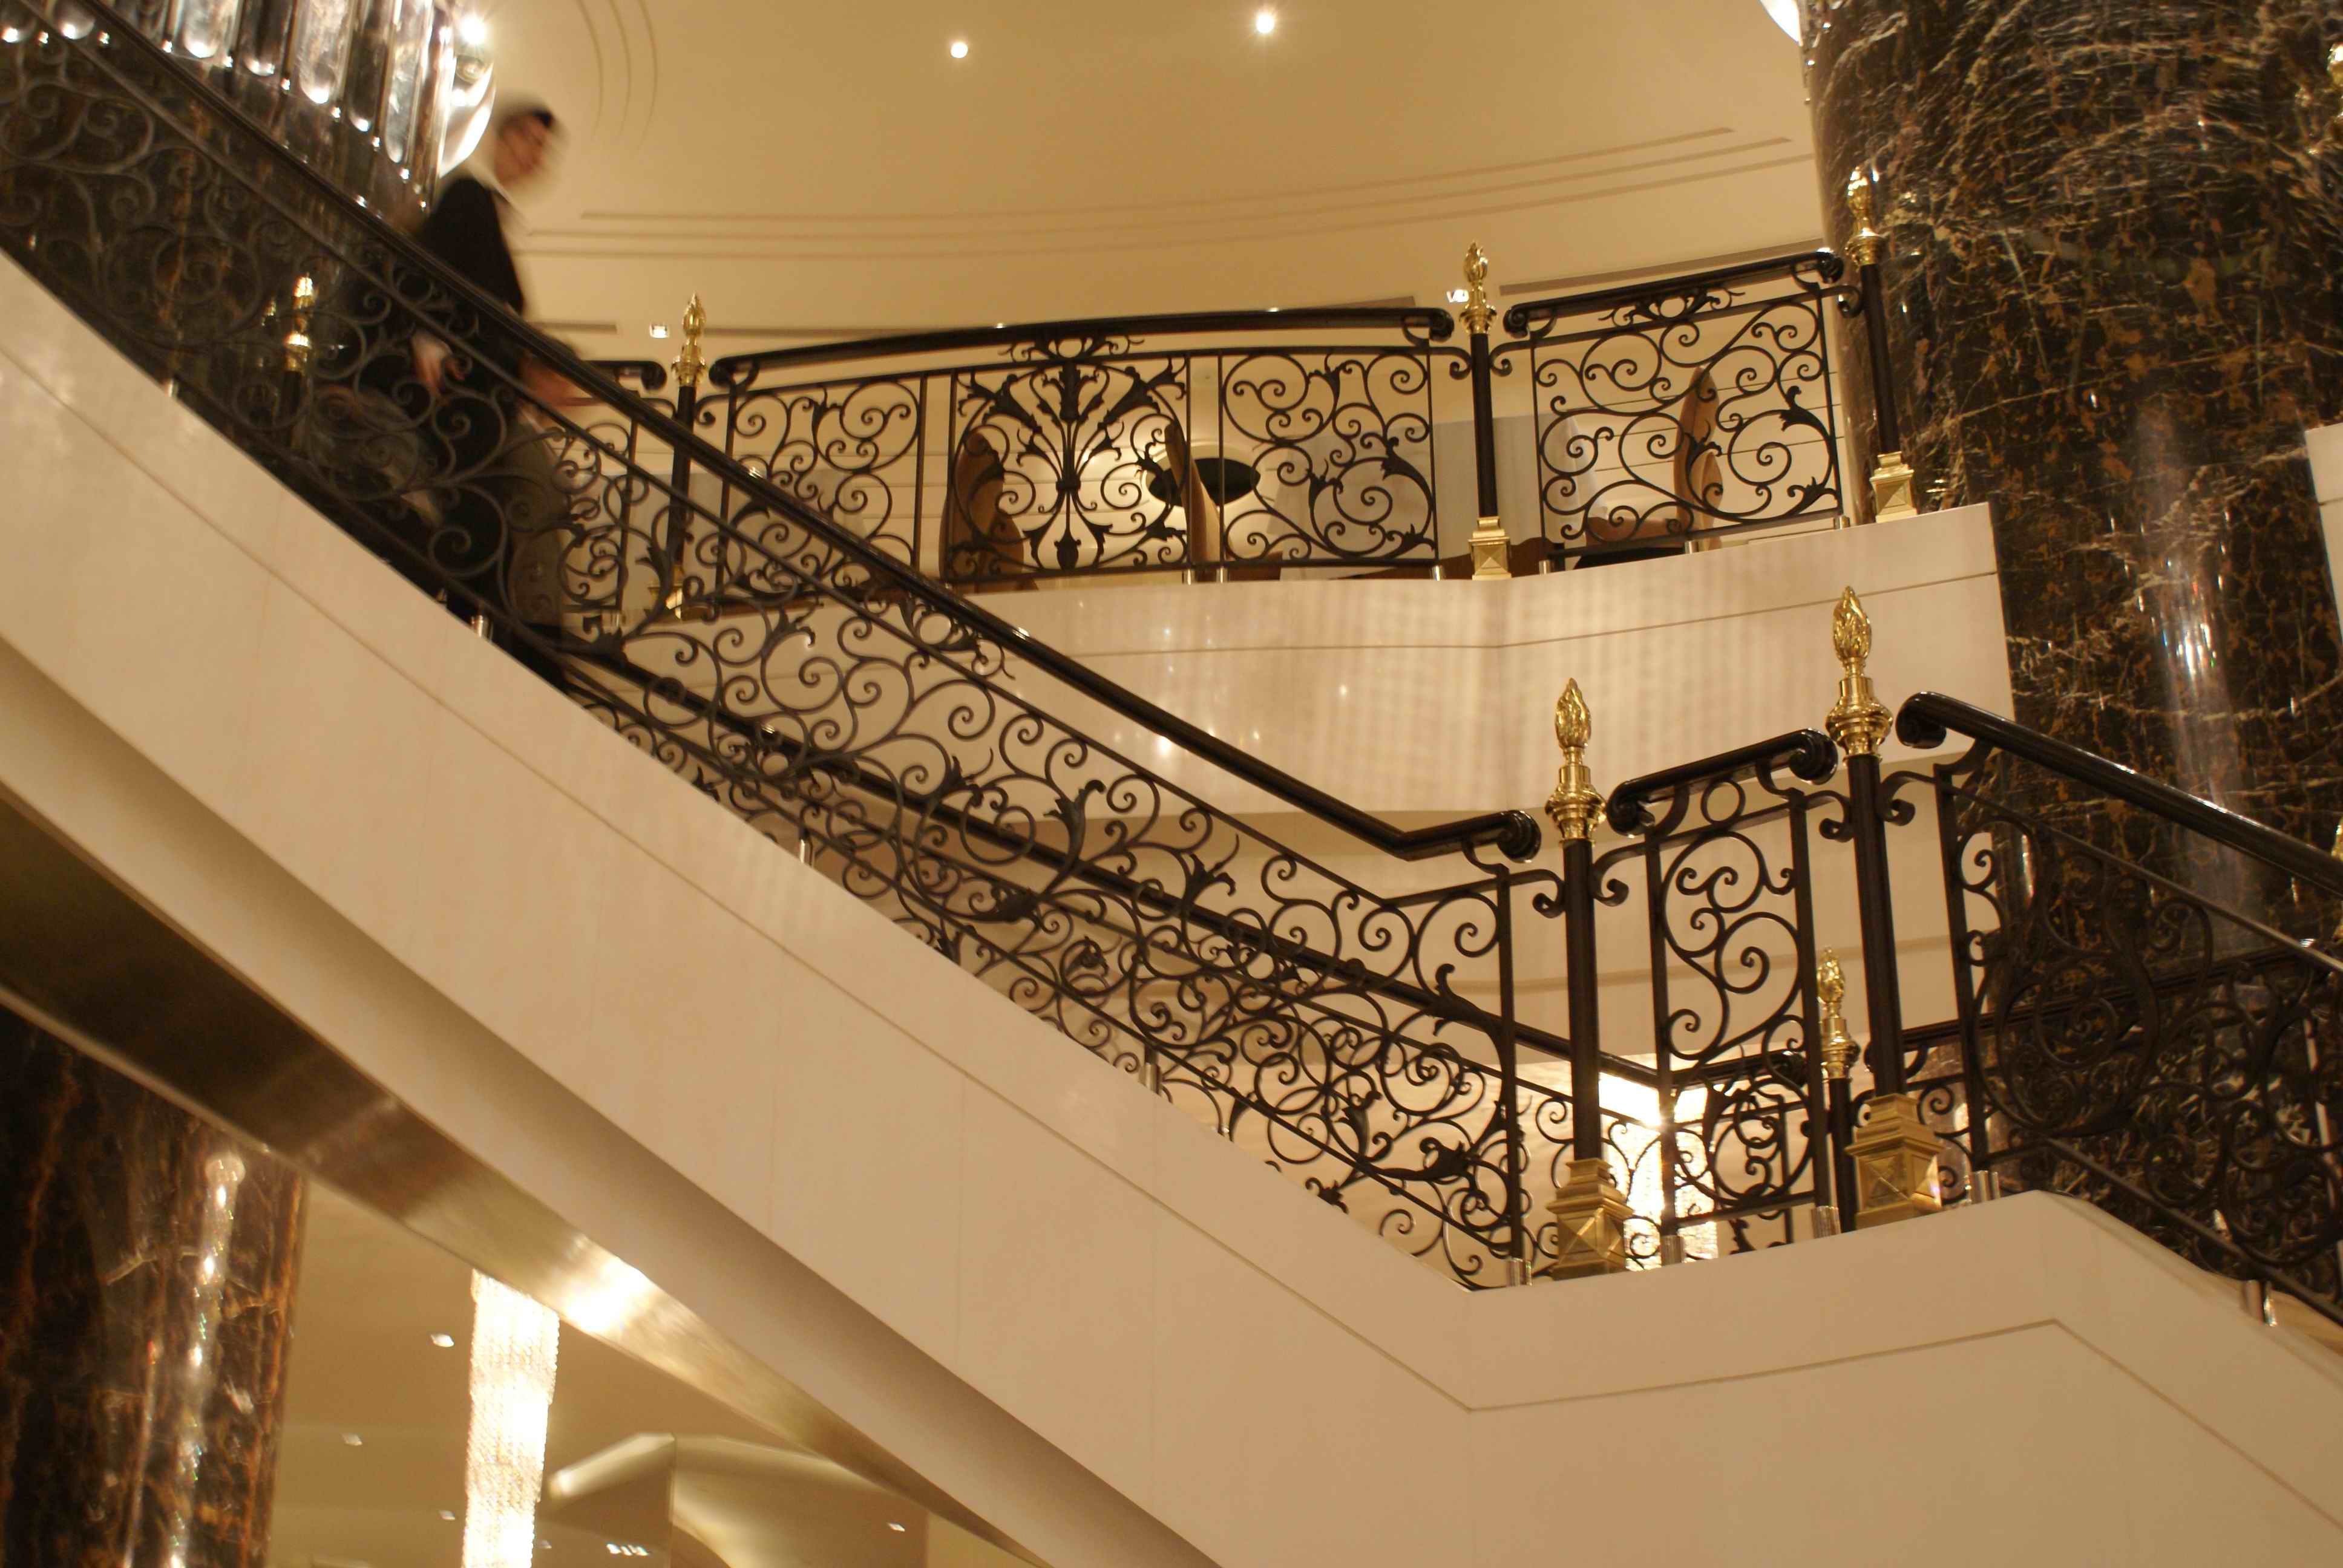 Hench Wrought Iron Balustrade/indoor Wrought Iron Stair Railing Design